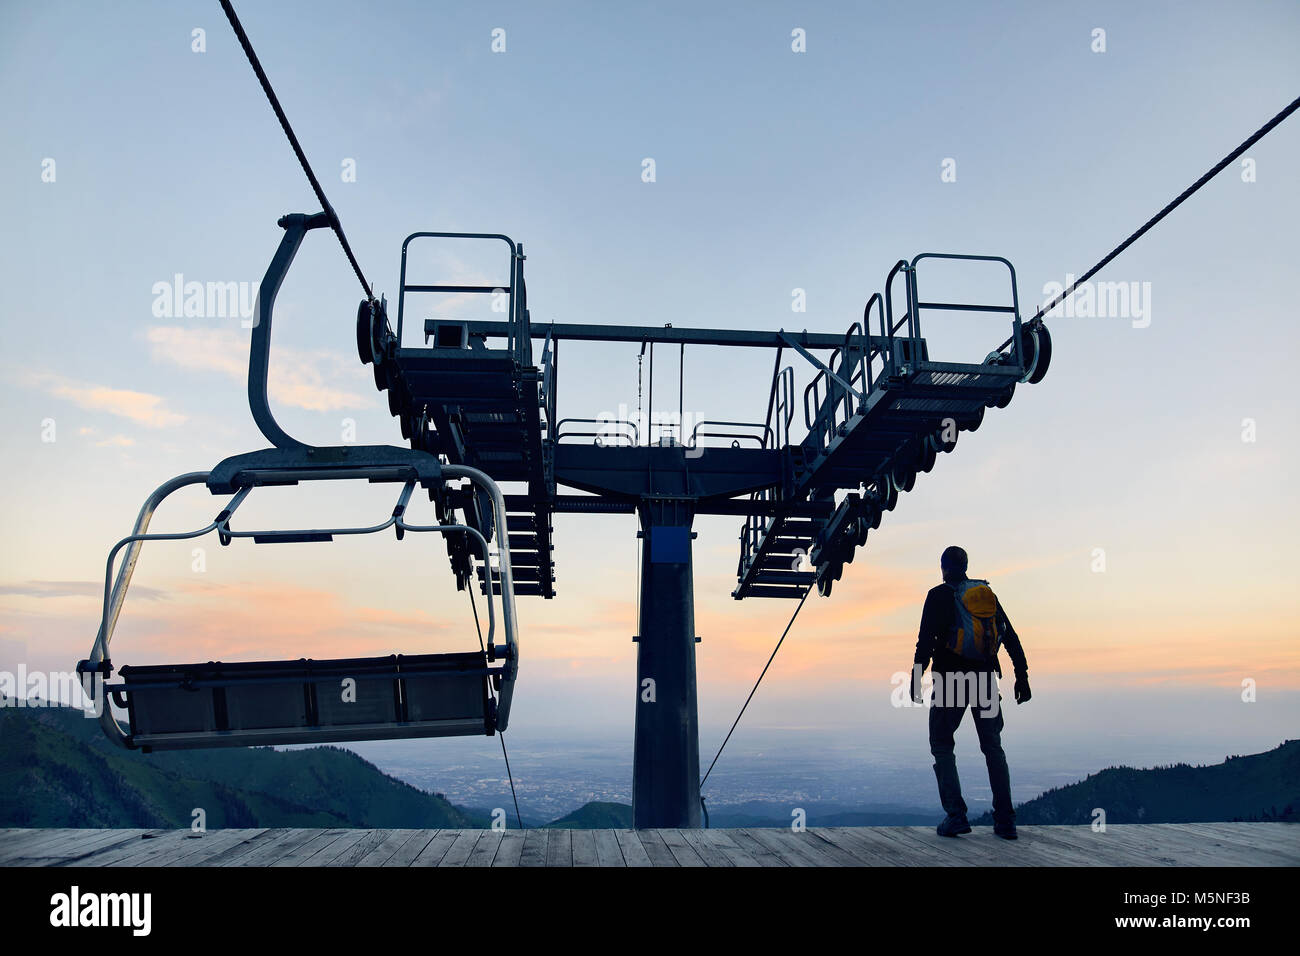 Touristische Mann am Ski Lift Station in Silhouette hoch in Mountain Ski Resort bei Sonnenaufgang Stockfoto